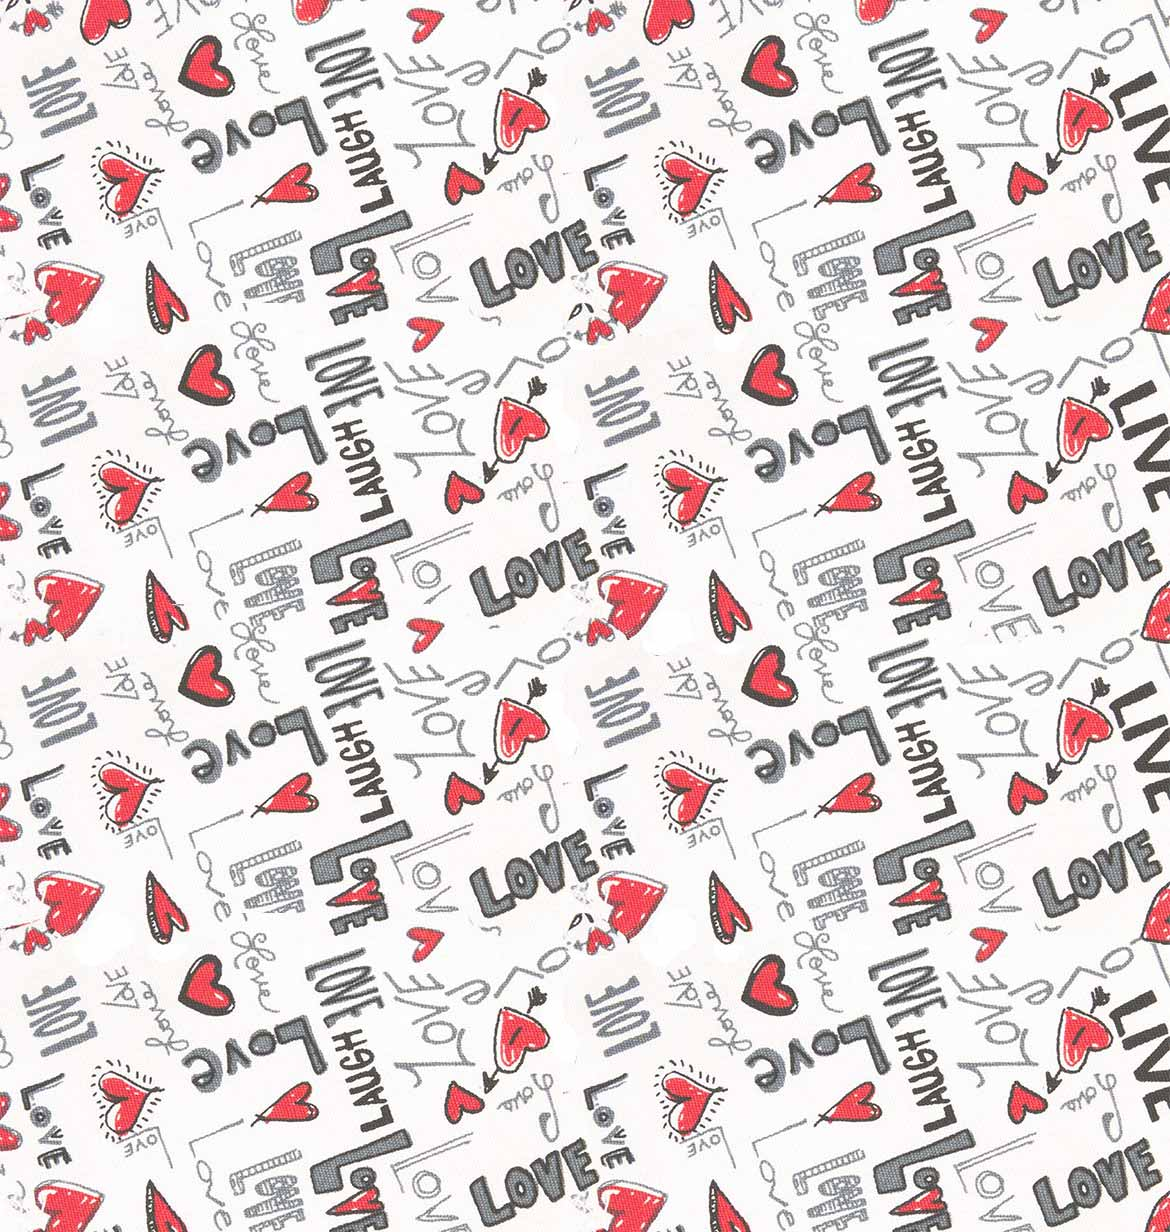 Background of LOVE pattern by Tom Clancy